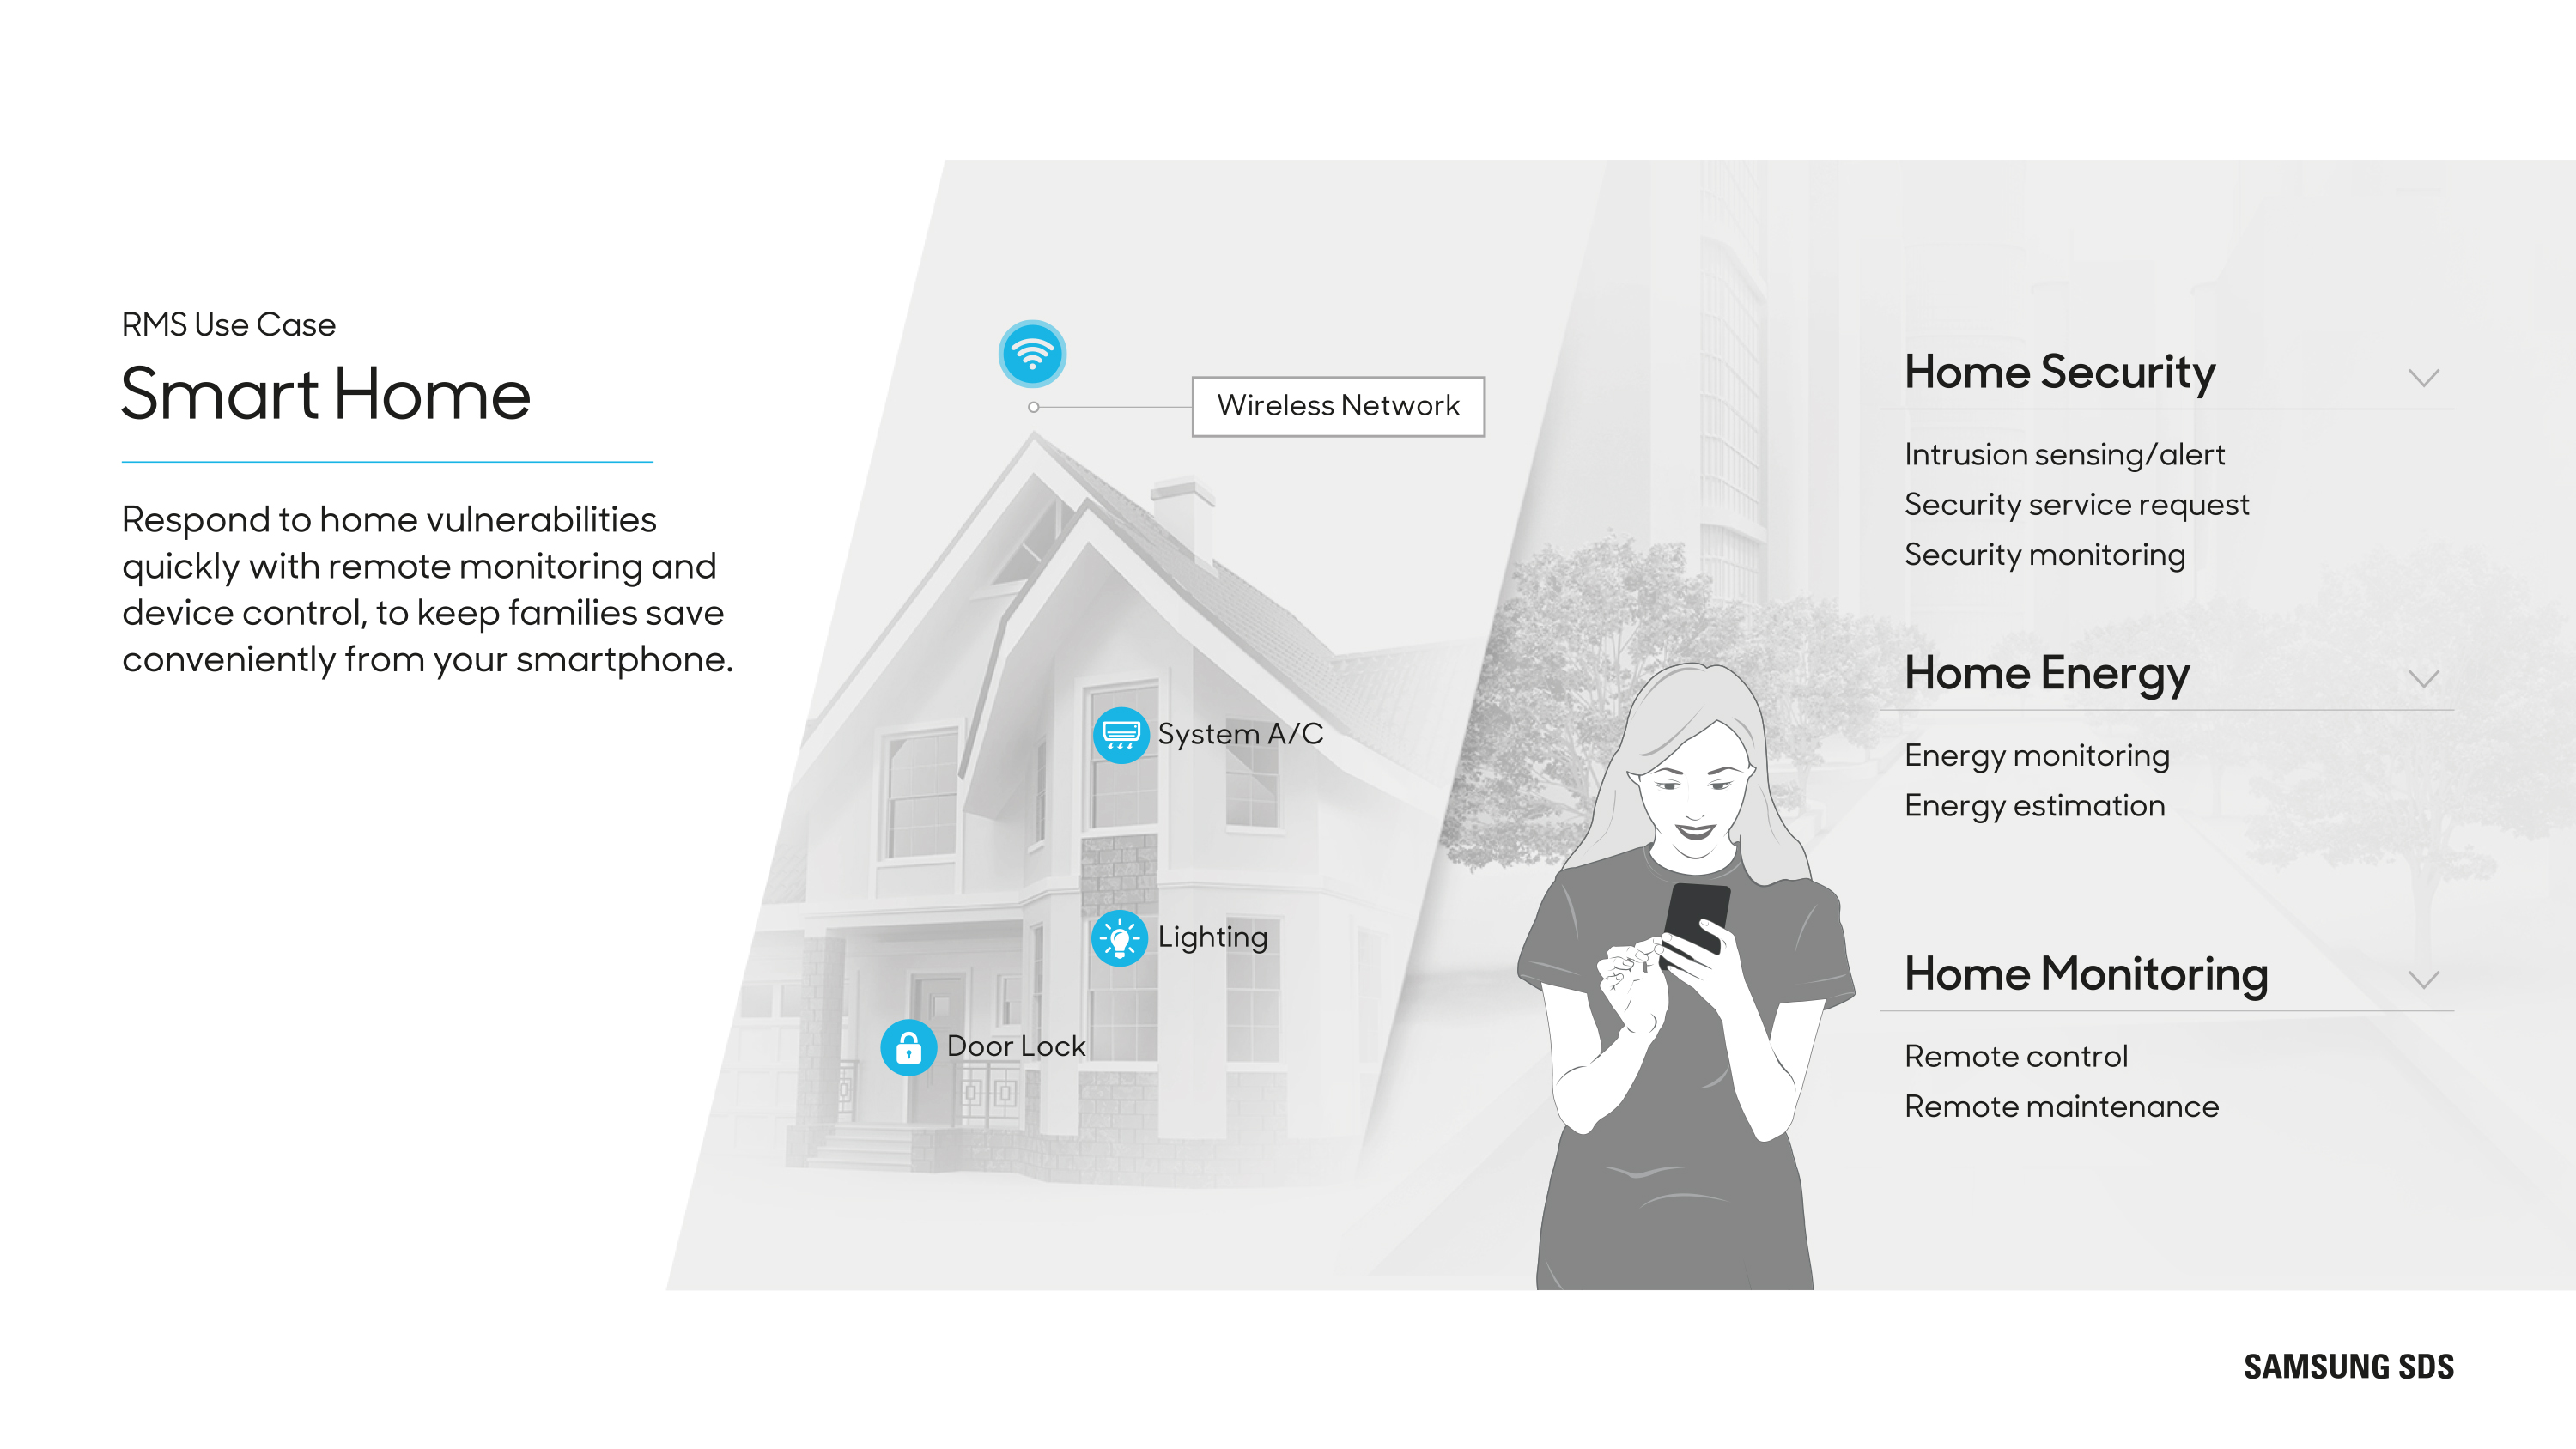 Smart Home Respond to home vulnerabilities quickly with remote monitoring and device control. Keep your family safe conveniently from your smartphone.